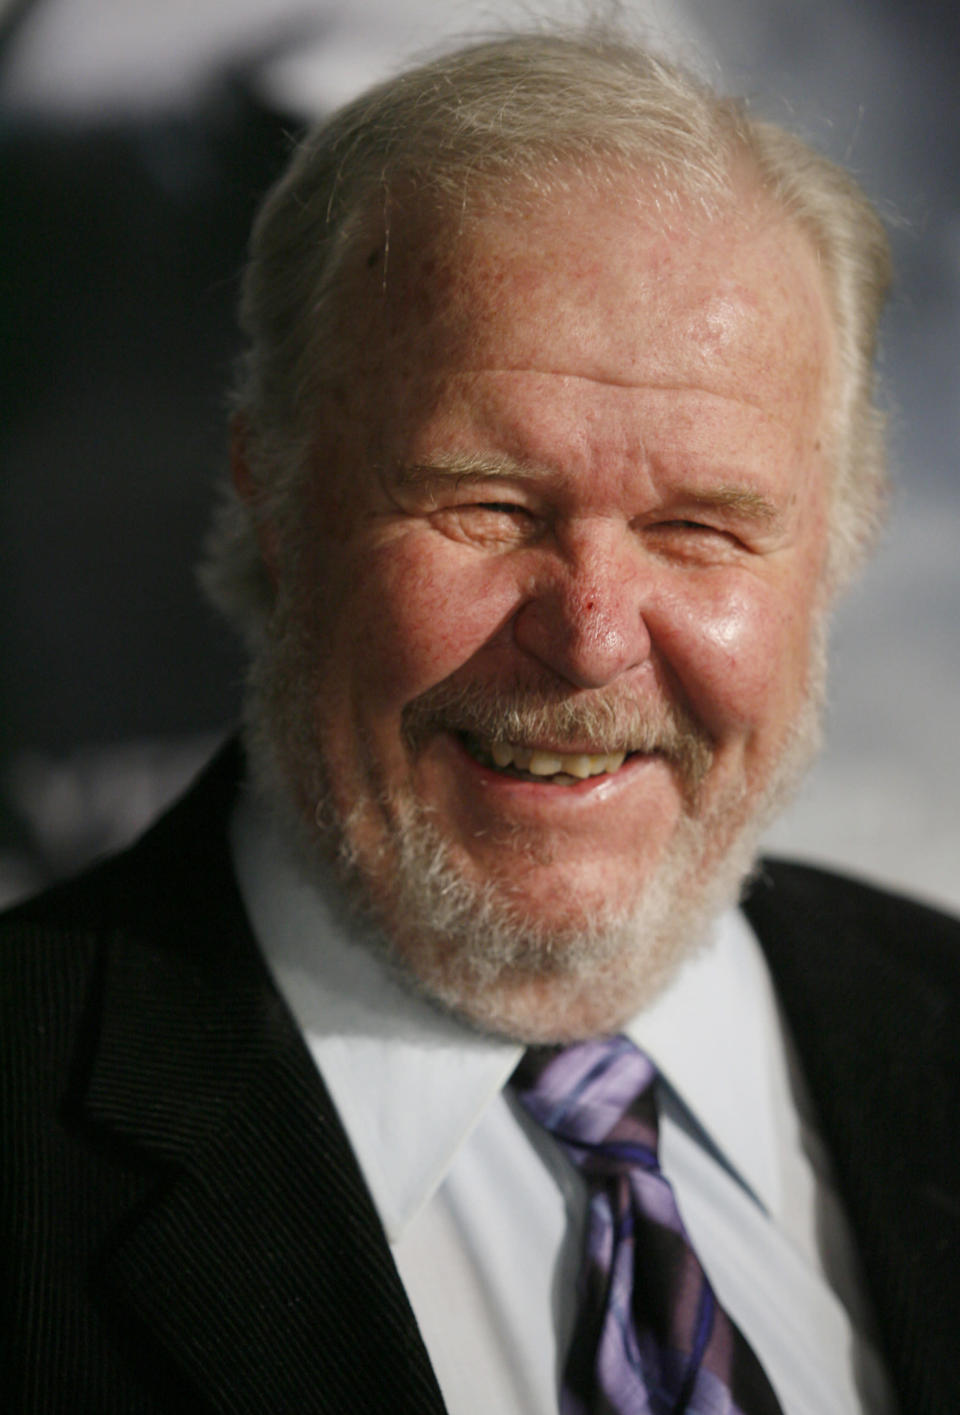 """FILE - In this Thursday, March 8, 2007, file photo, actor Ned Beatty arrives at the premiere of the movie """"Shooter,"""" in Los Angeles. Beatty, the indelible character actor whose first film role, as a genial vacationer raped by a backwoodsman in 1972′s """"Deliverance,"""" launched him on a long, prolific and accomplished career, died Sunday, June 13, 2021. He was 83. (AP Photo/Gus Ruelas, File)"""